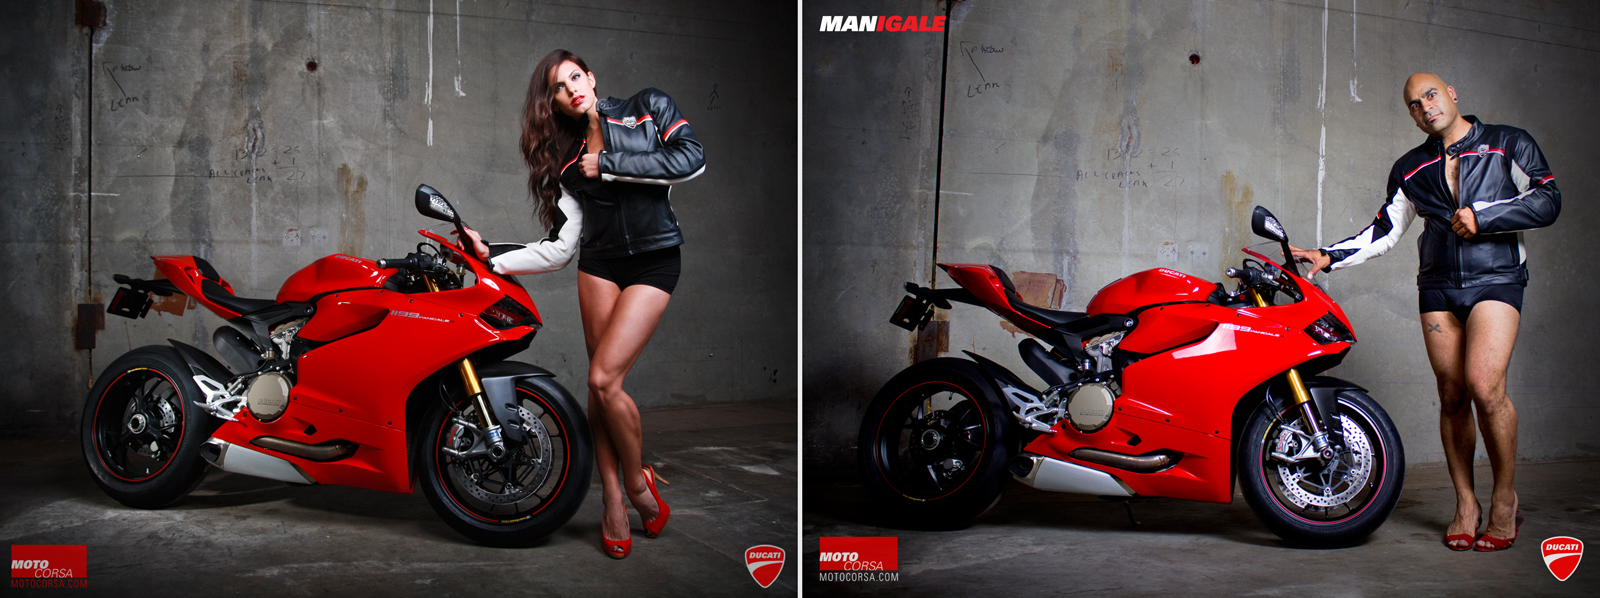 manigale-ducati-1199-wallpaper-19-comp